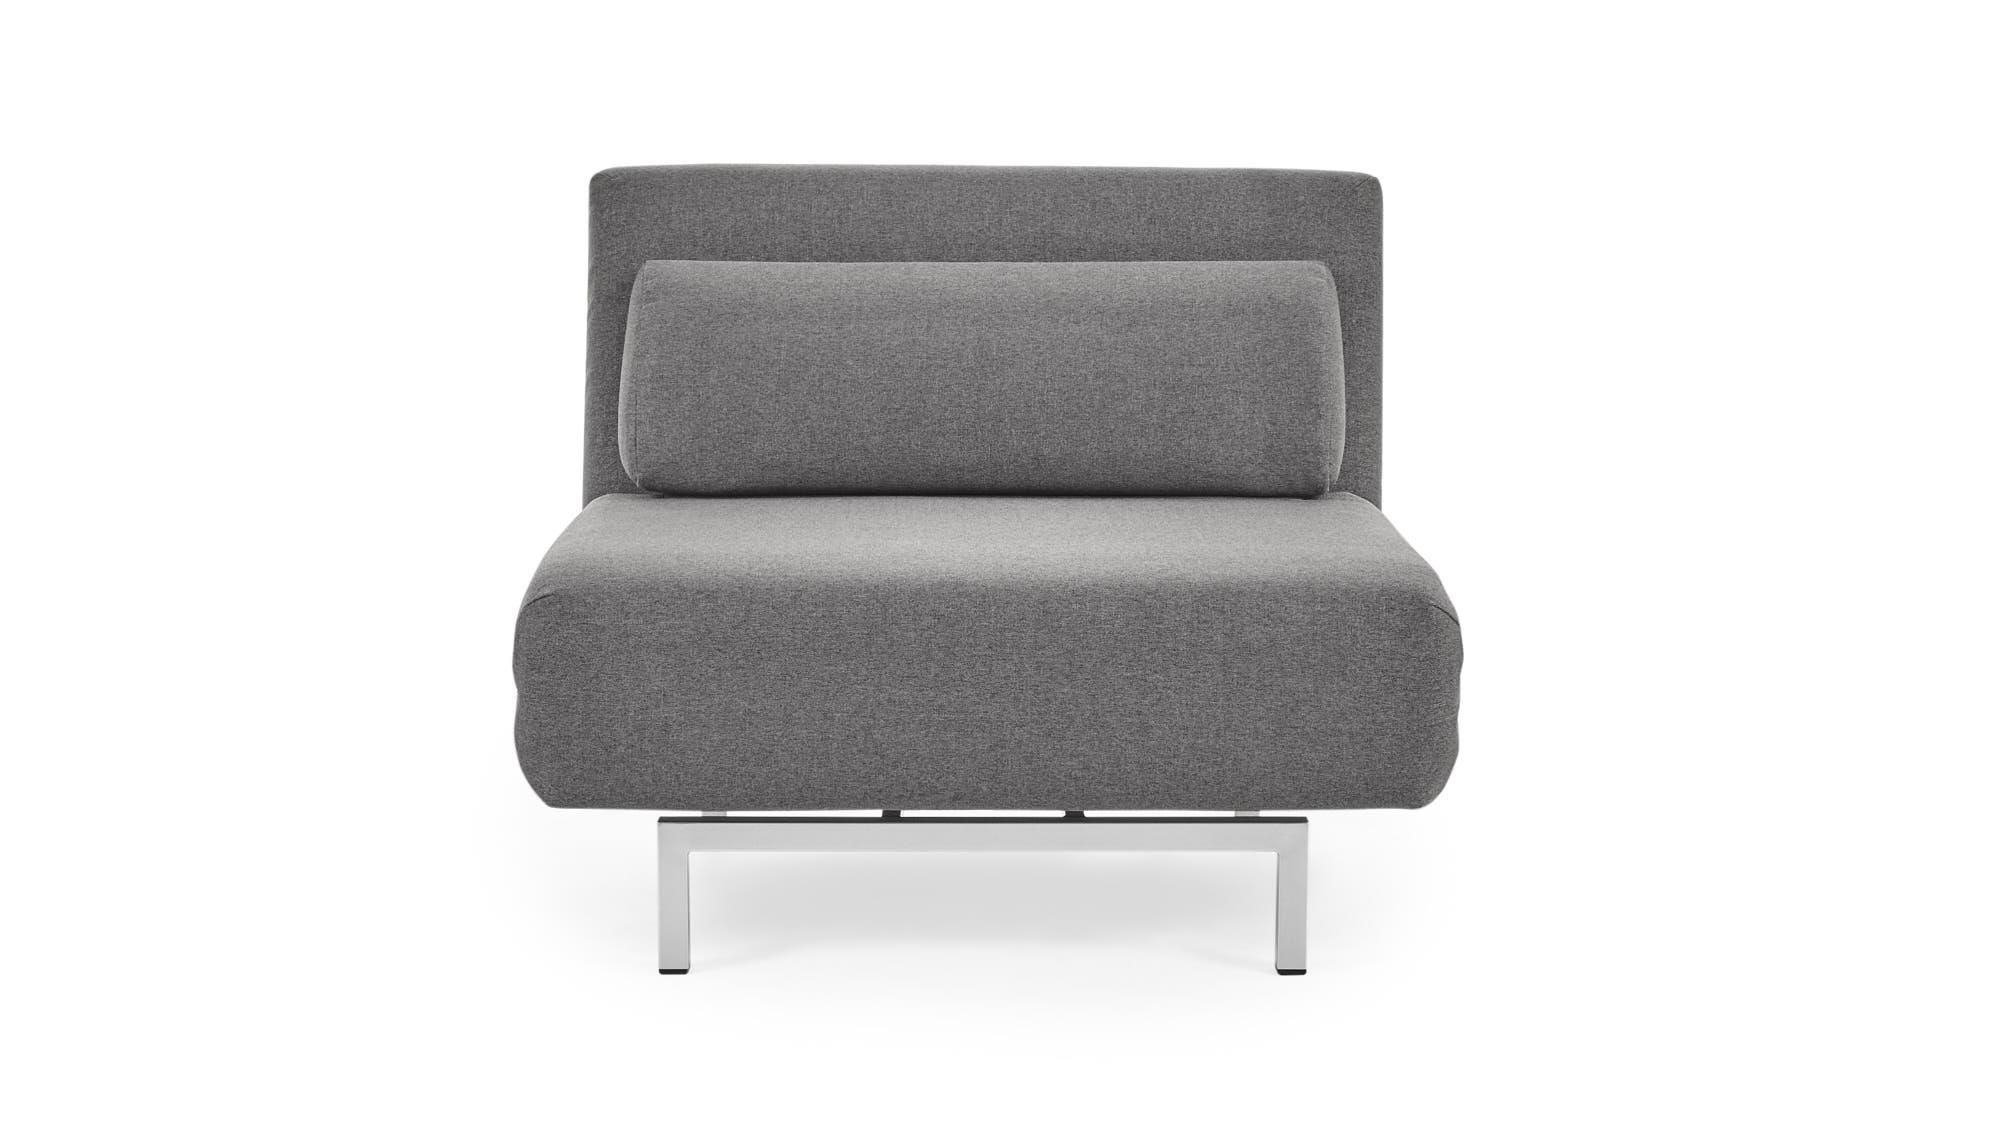 Le Vele Replica – Armchair Sofa Bed | Loungelovers Within Single Chair Sofa Beds (Image 10 of 22)